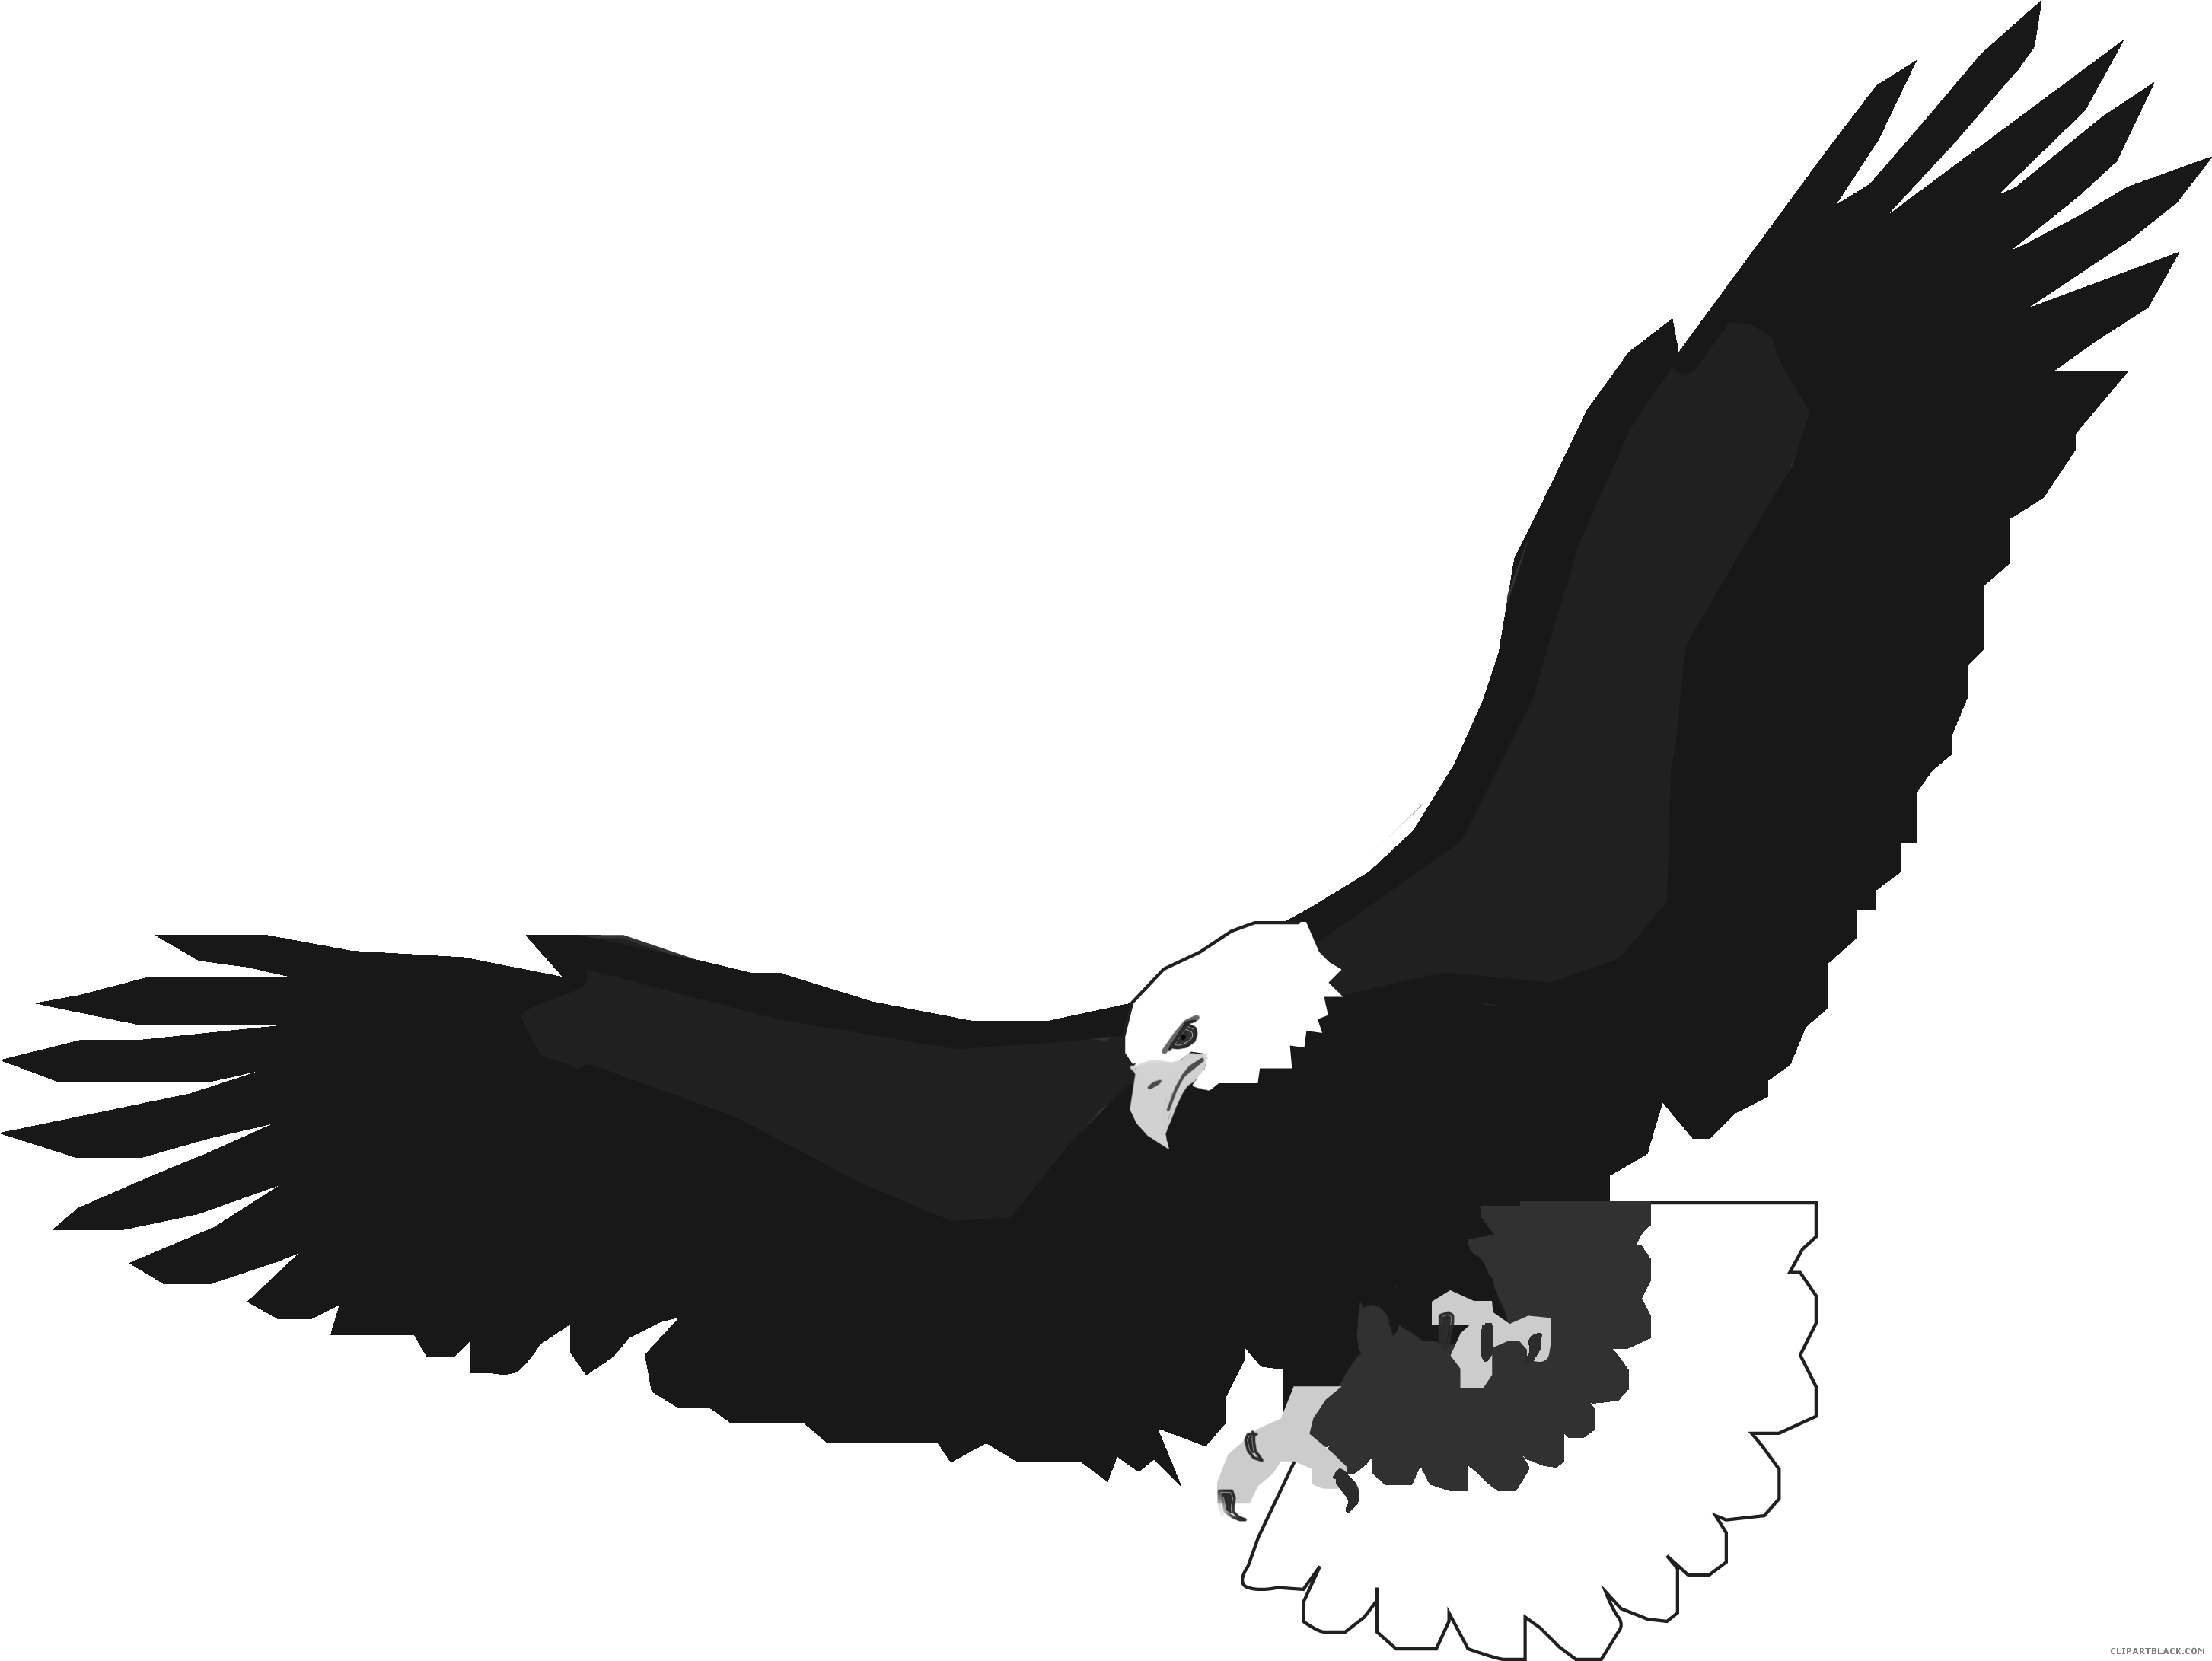 Eagle drawing download best. Free clipart of eagles soaring